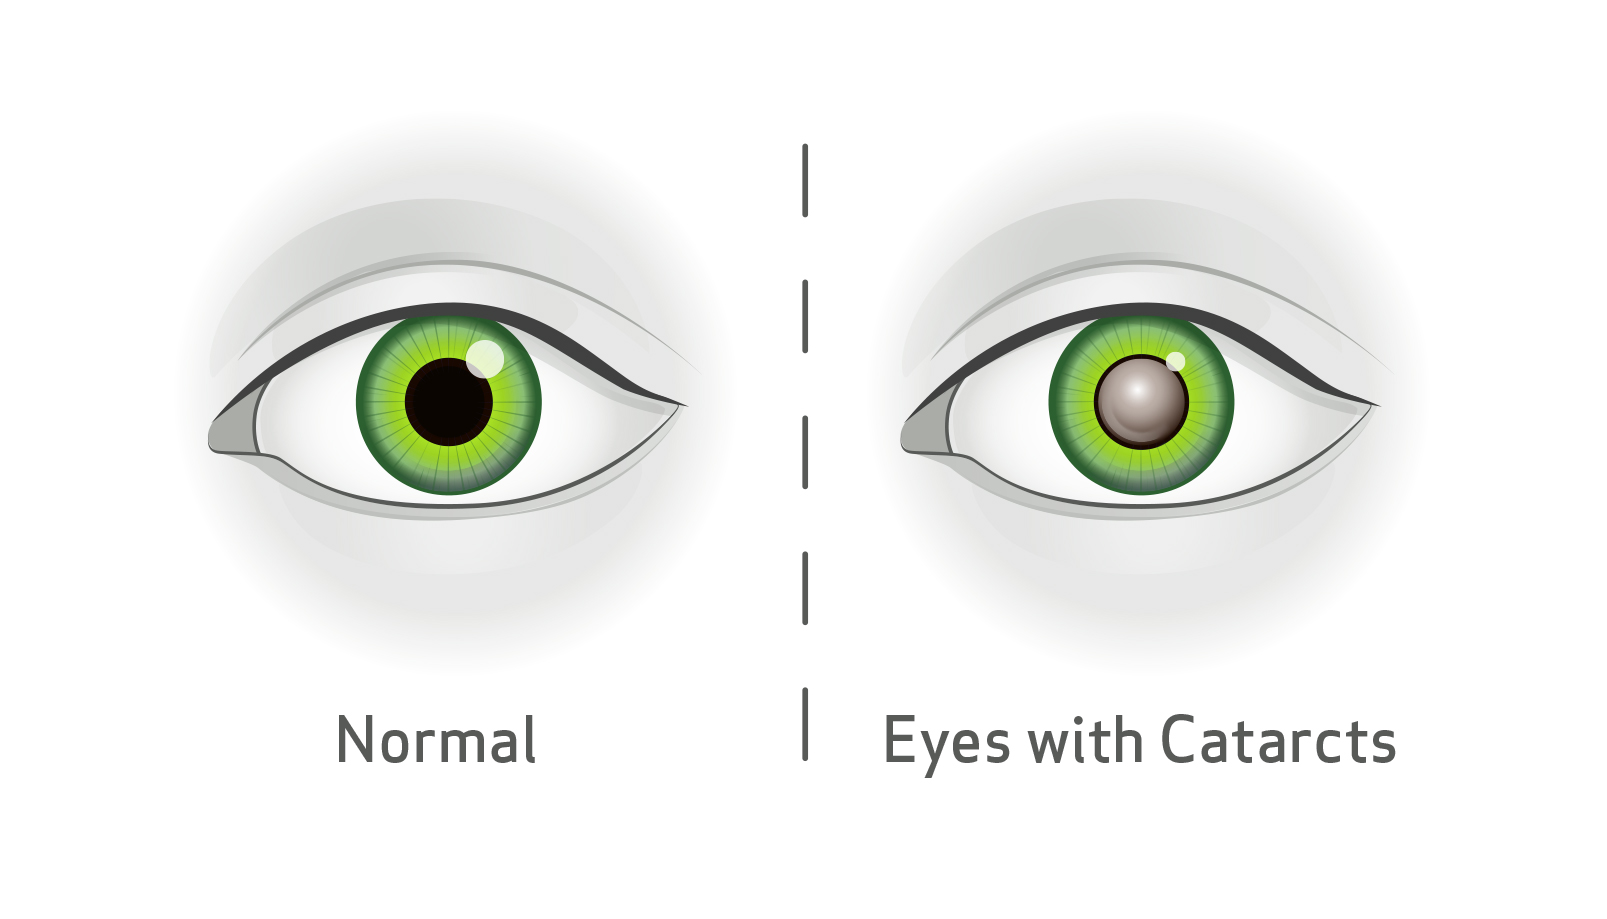 Blink Vision Cataract iagram, left showing normal eye, right showing eye with cataracts